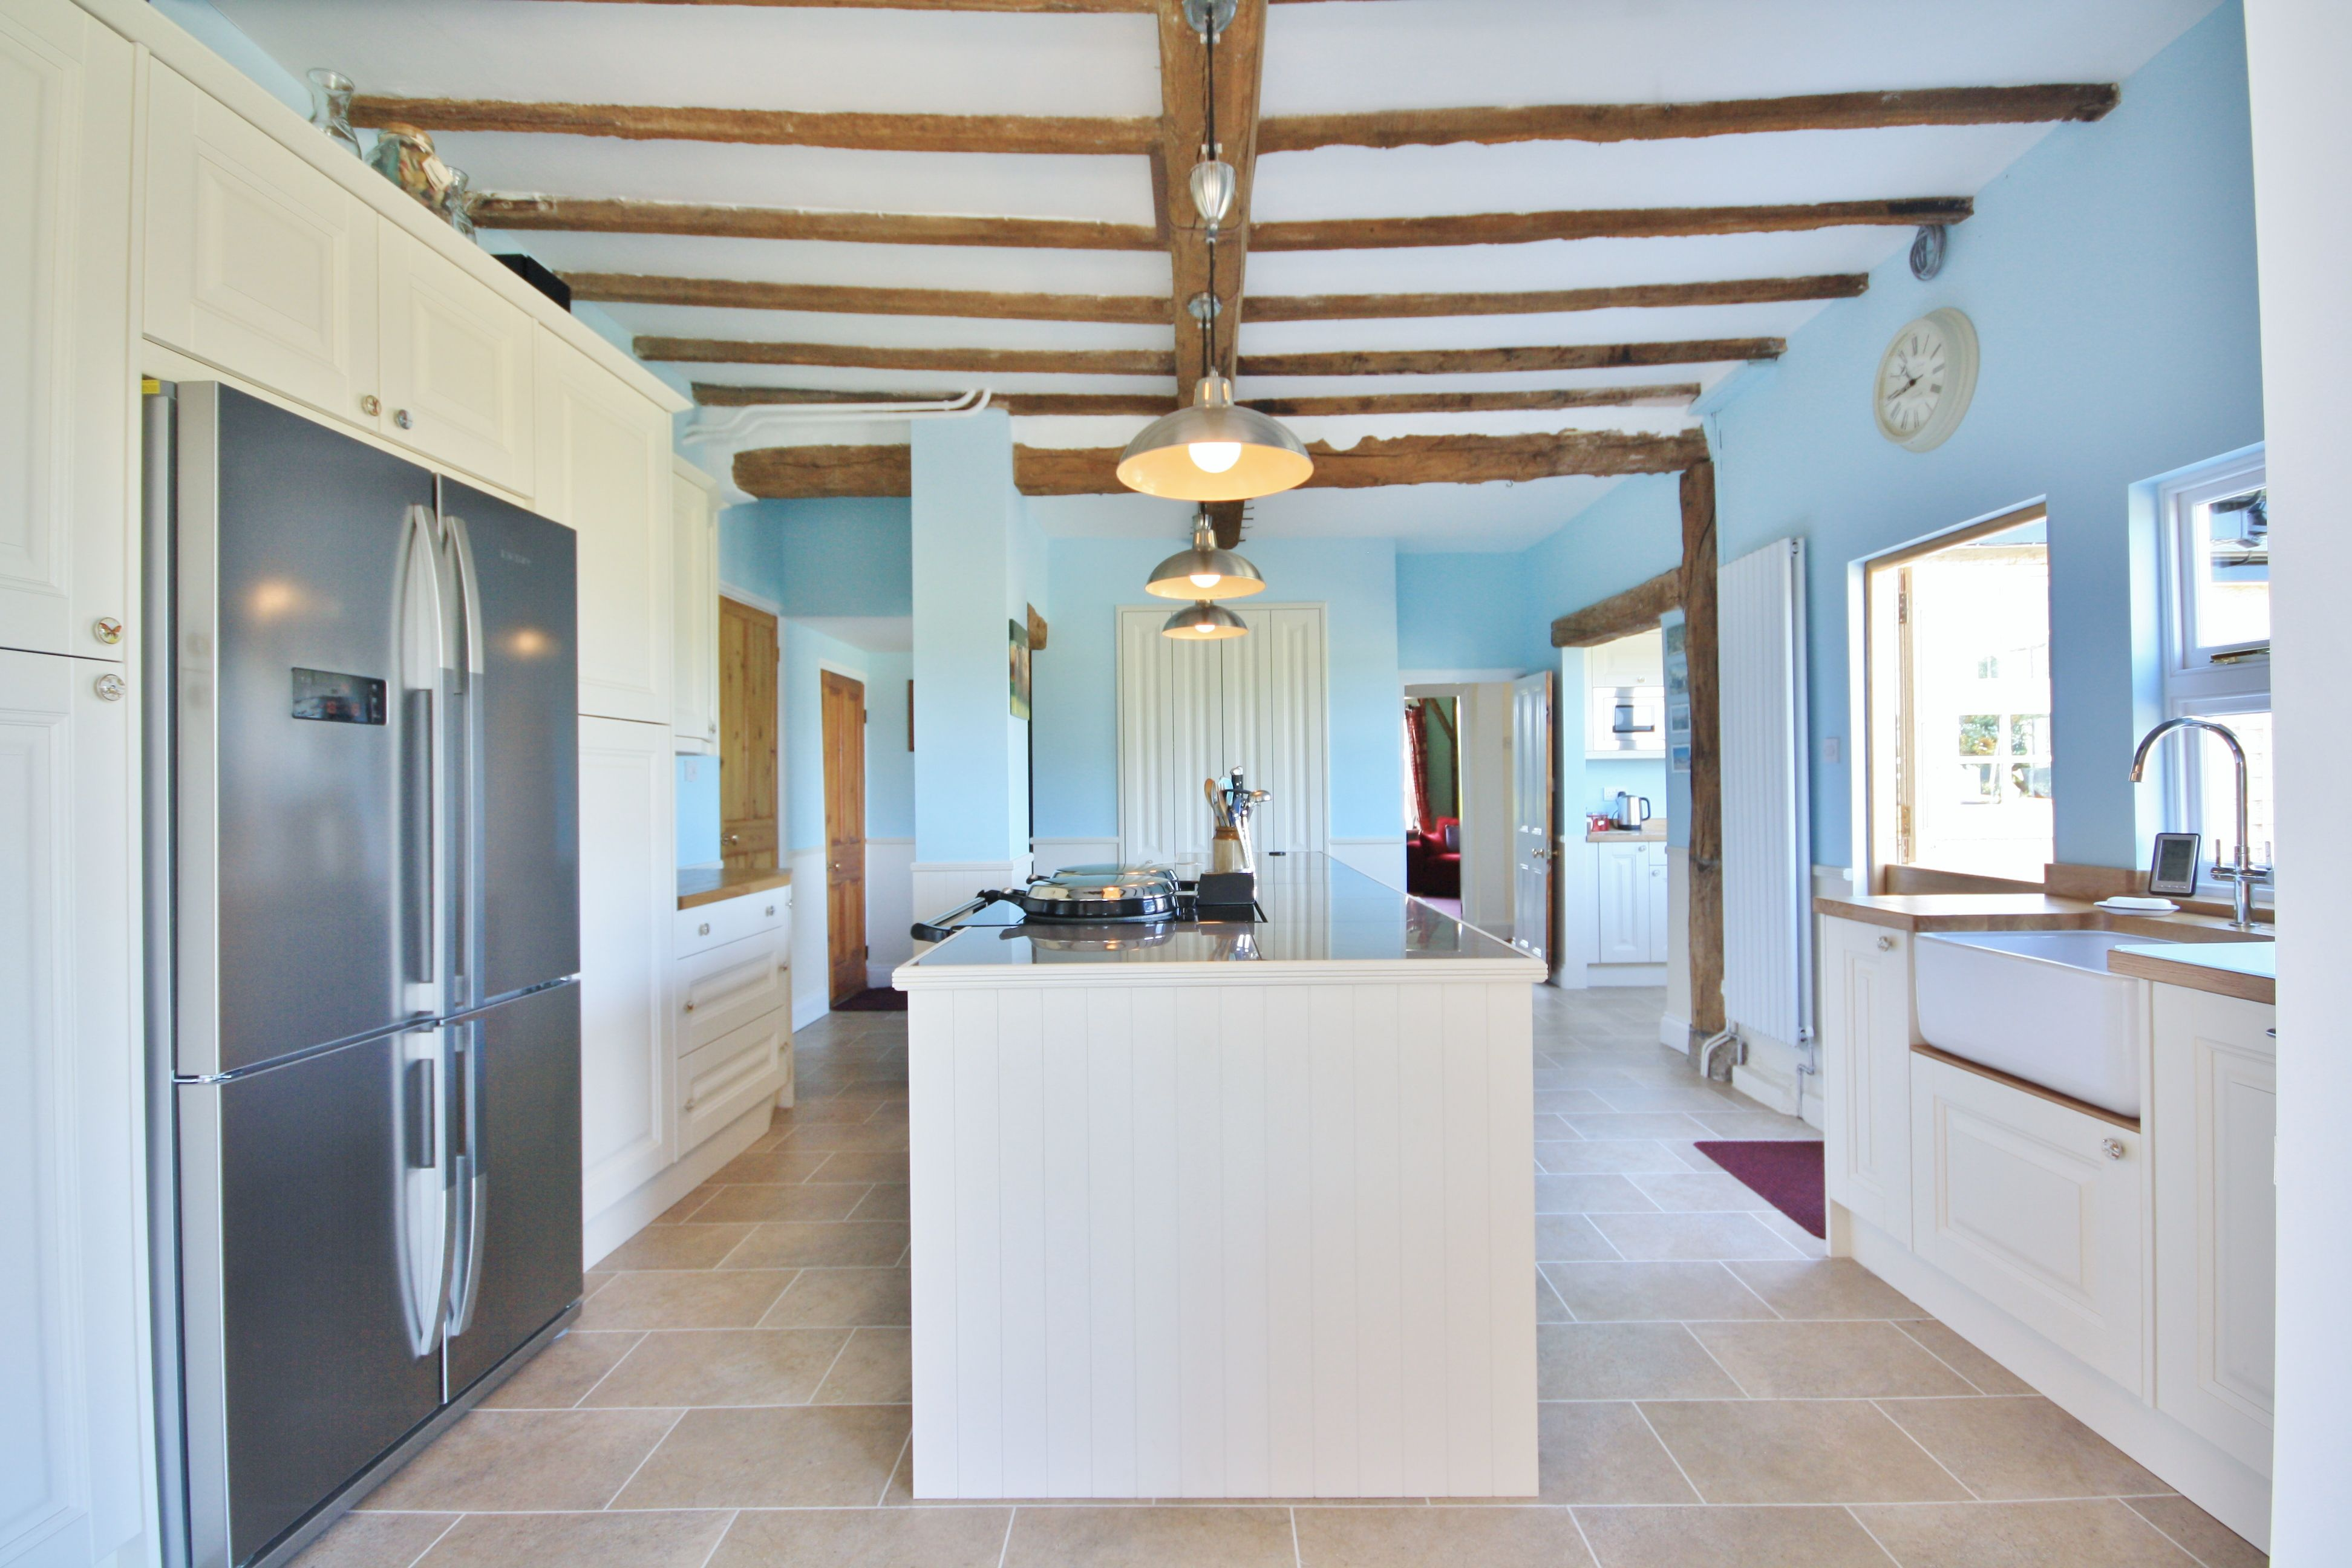 Shaker interior door styles made to measure kitchen design in calico designed supplied and